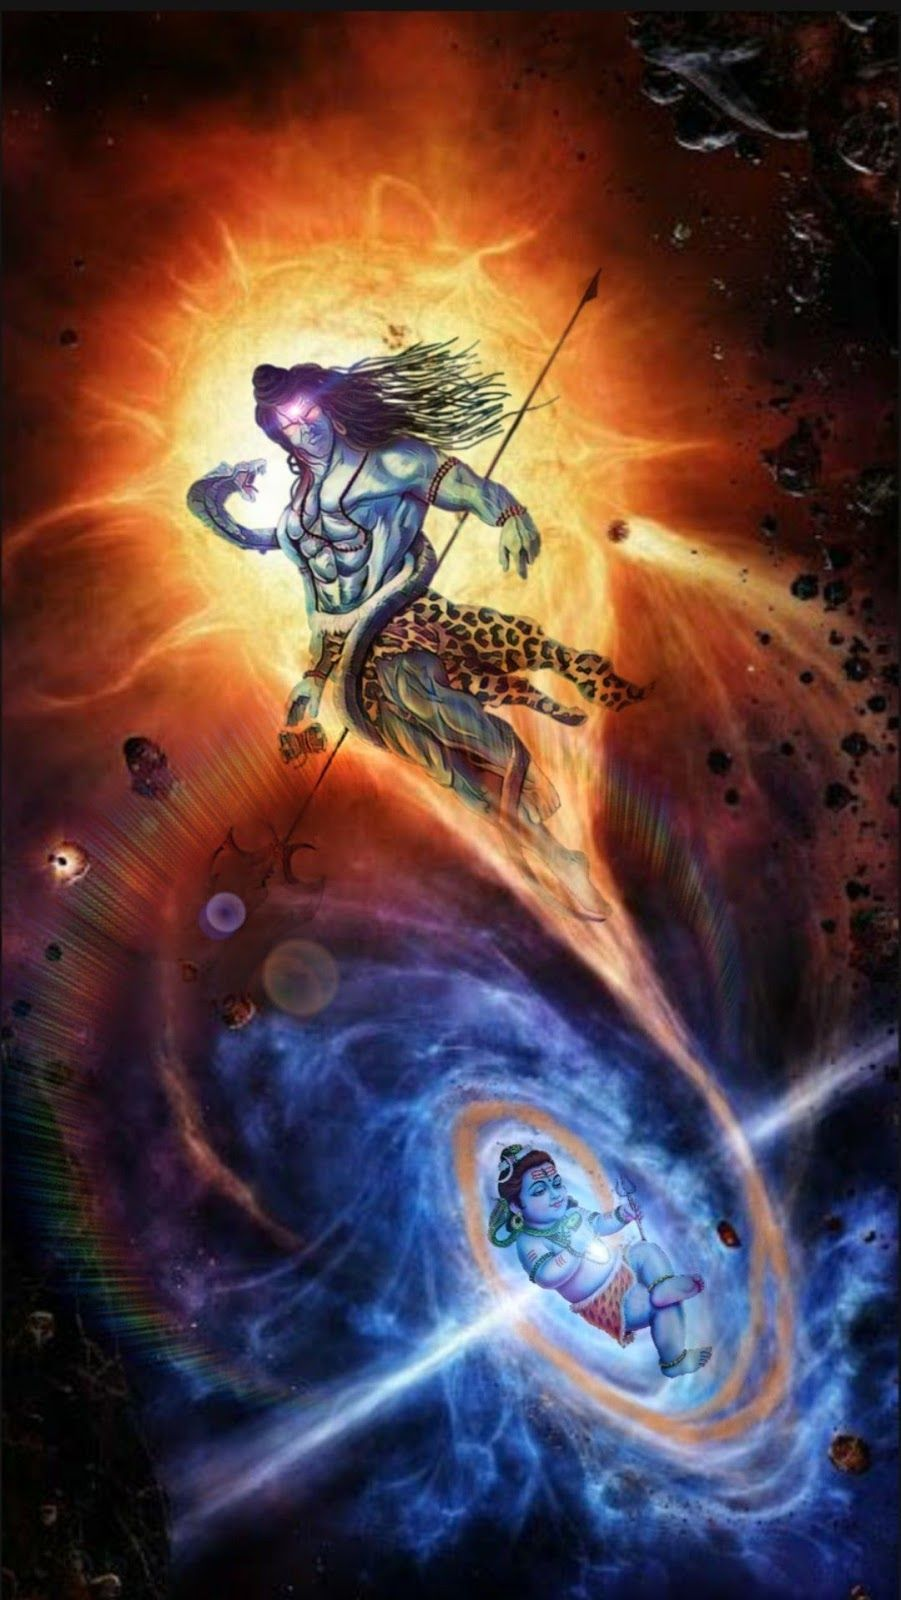 280 Lord Shiva Angry Hd Wallpapers 1080p Download For Desktop 2020 Mahadev Animated Images In 2020 Lord Shiva Painting Shiva Angry Lord Shiva